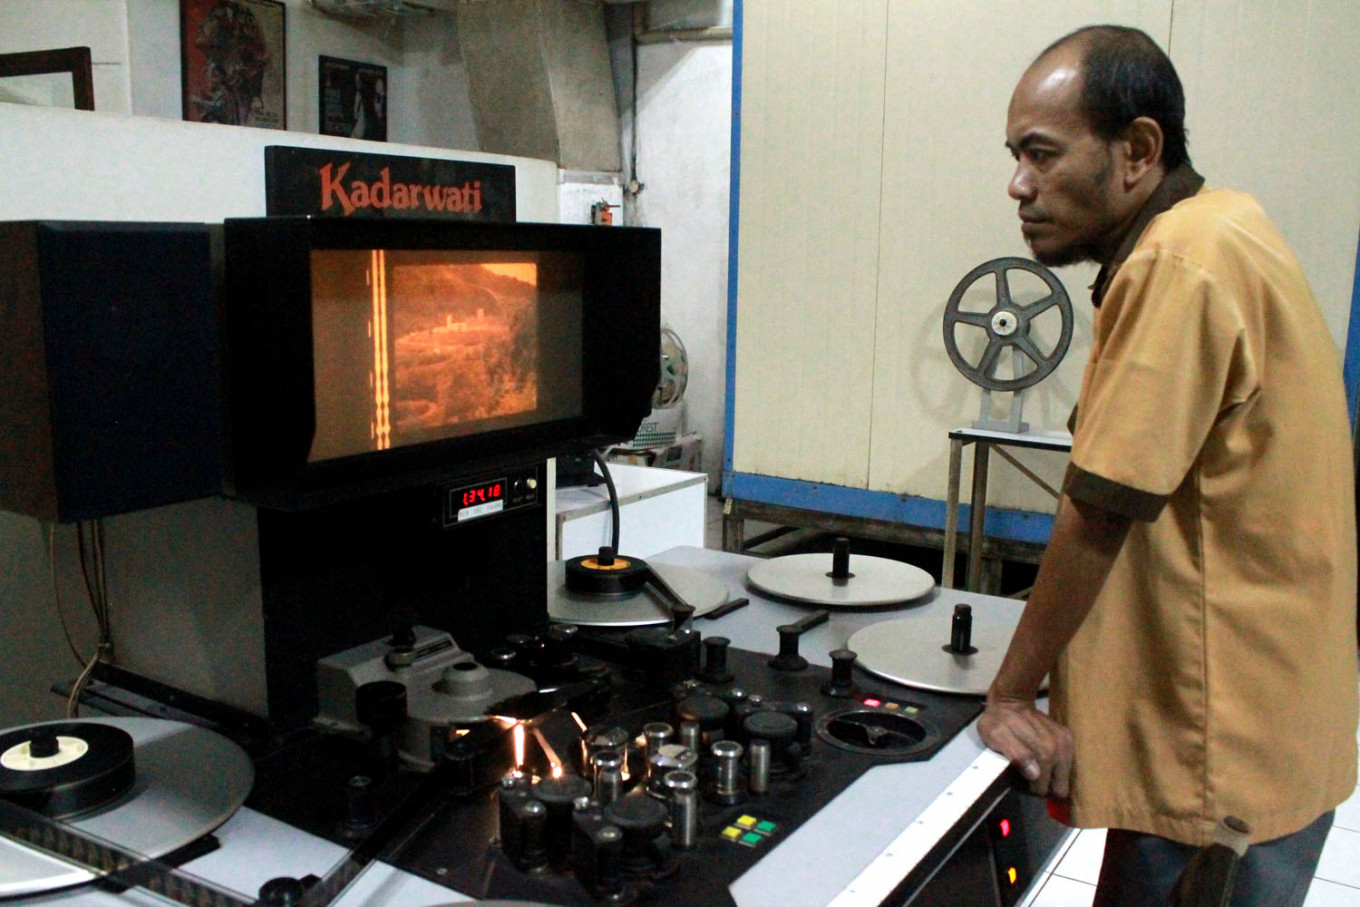 Quality control: Preservation technician Budi watches a cleaned movie reel looking for defects. JP/Xena Olivia